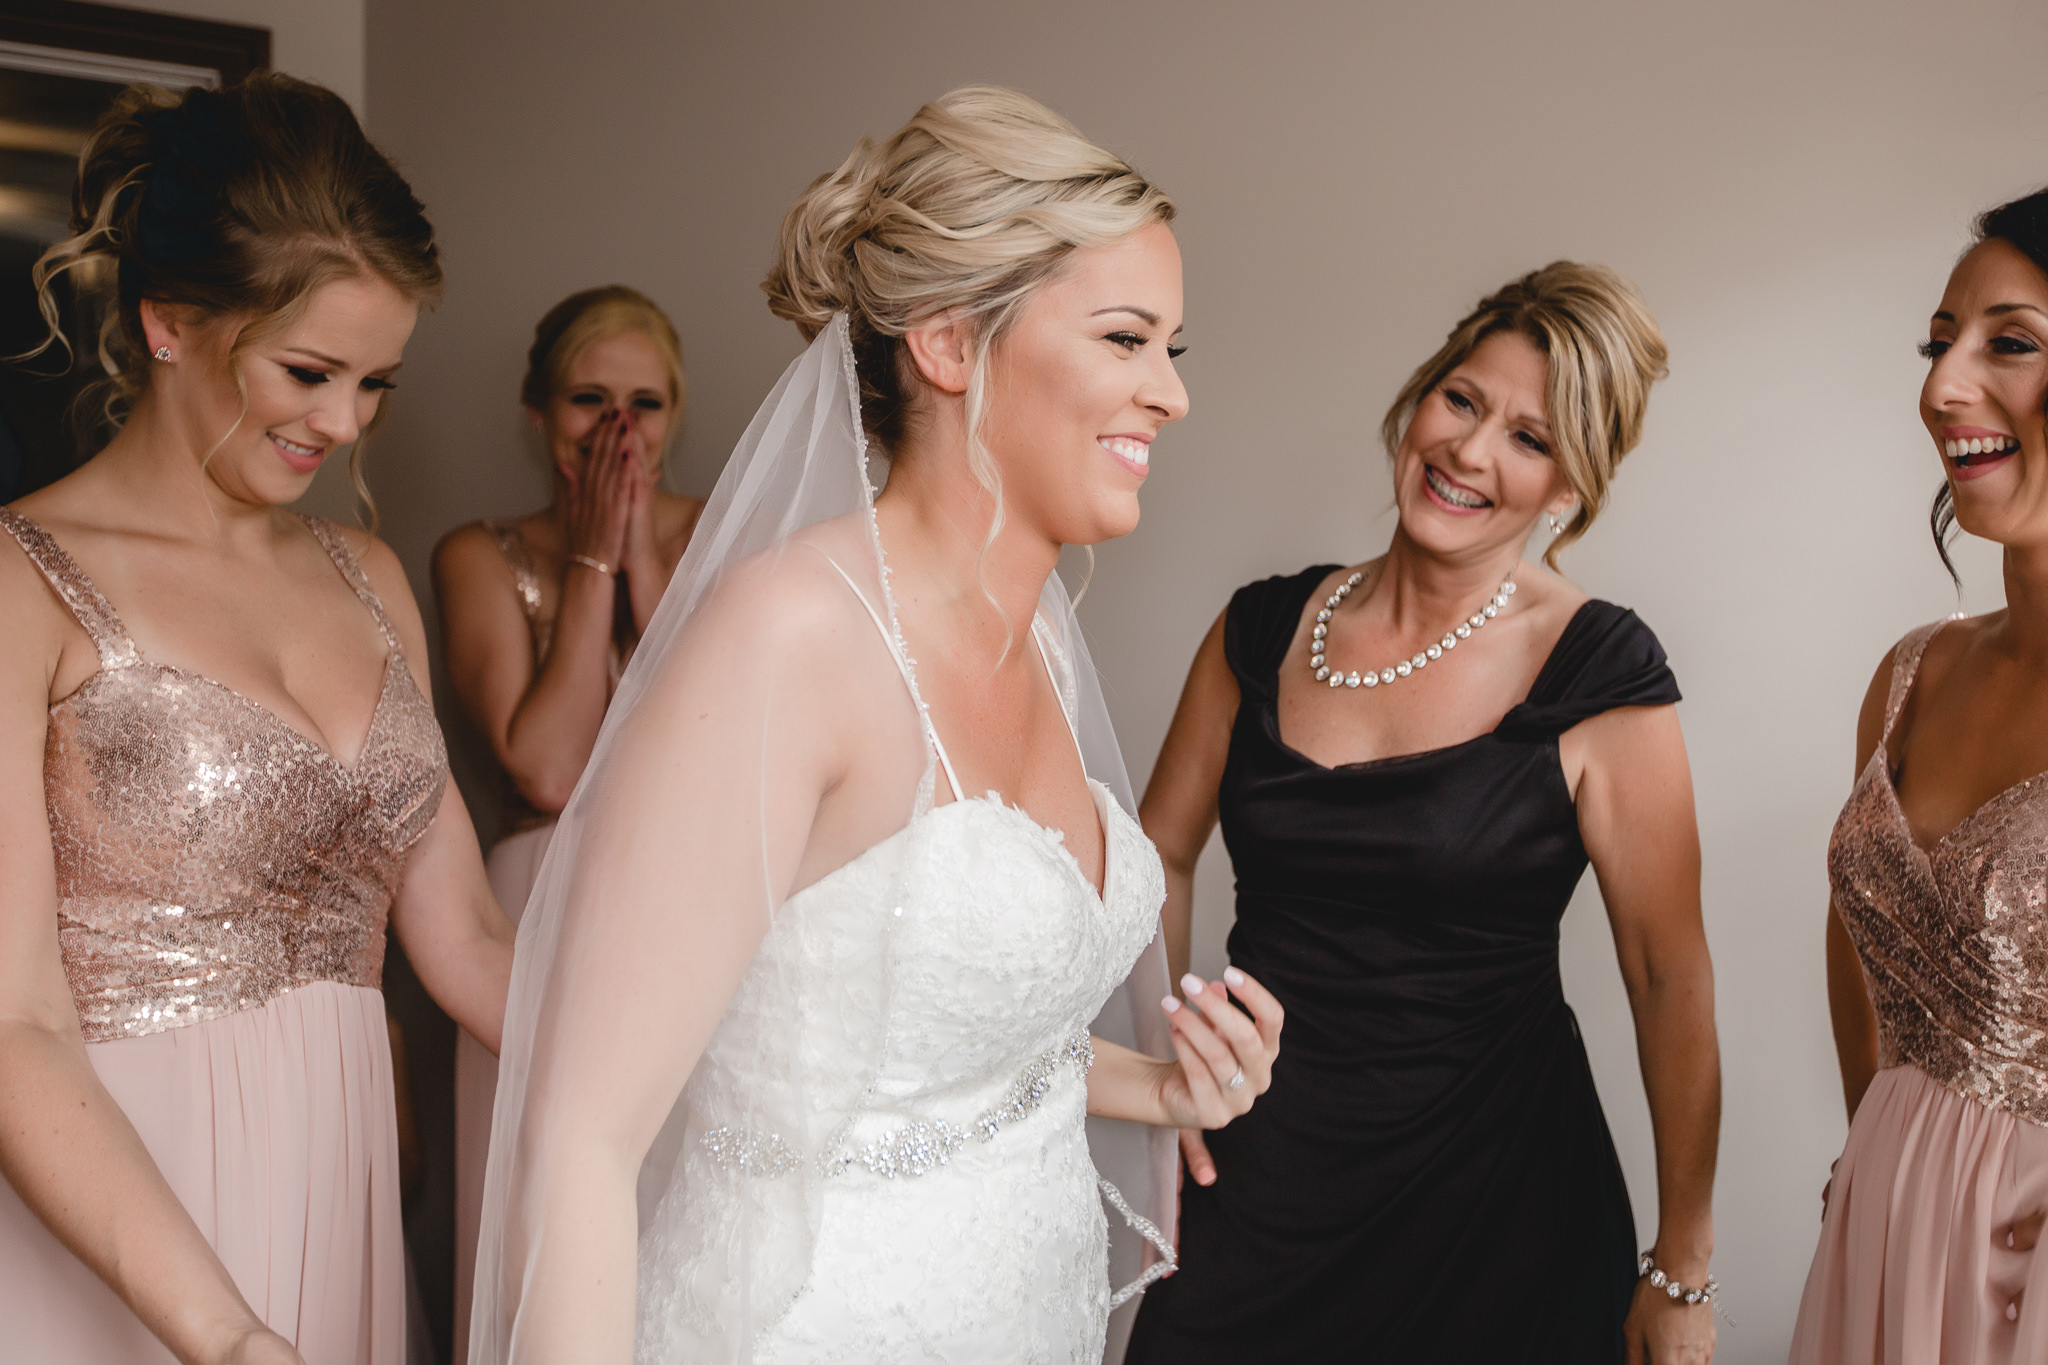 Mother of the bride smiles as her daughter gets into her wedding dress